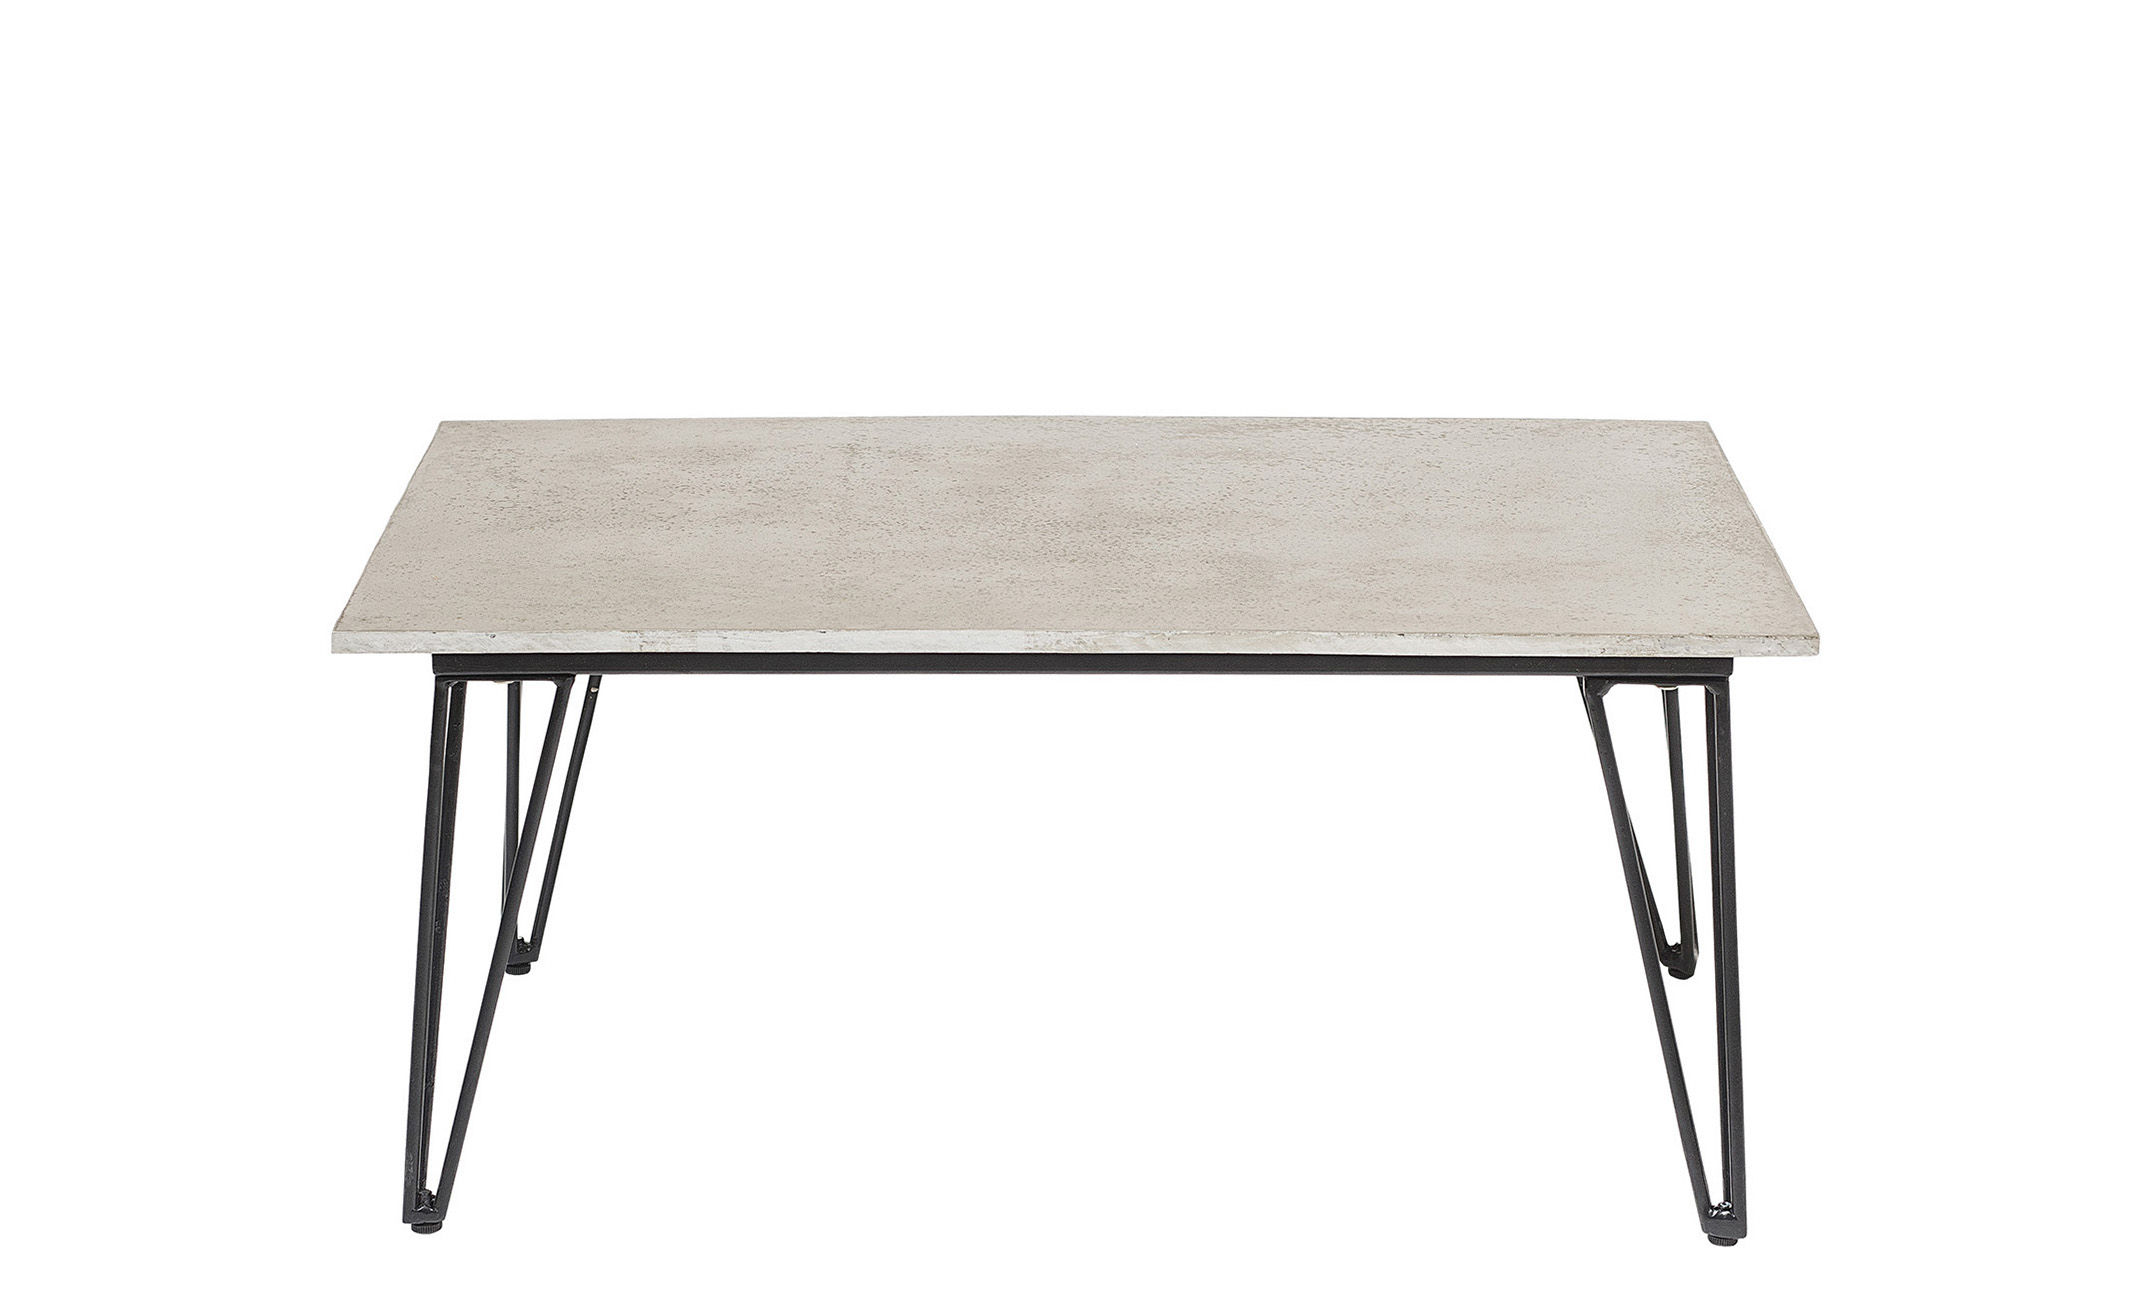 Table Basse En Beton Table Basse Concrete Béton 90 X 60 Cm Bloomingville